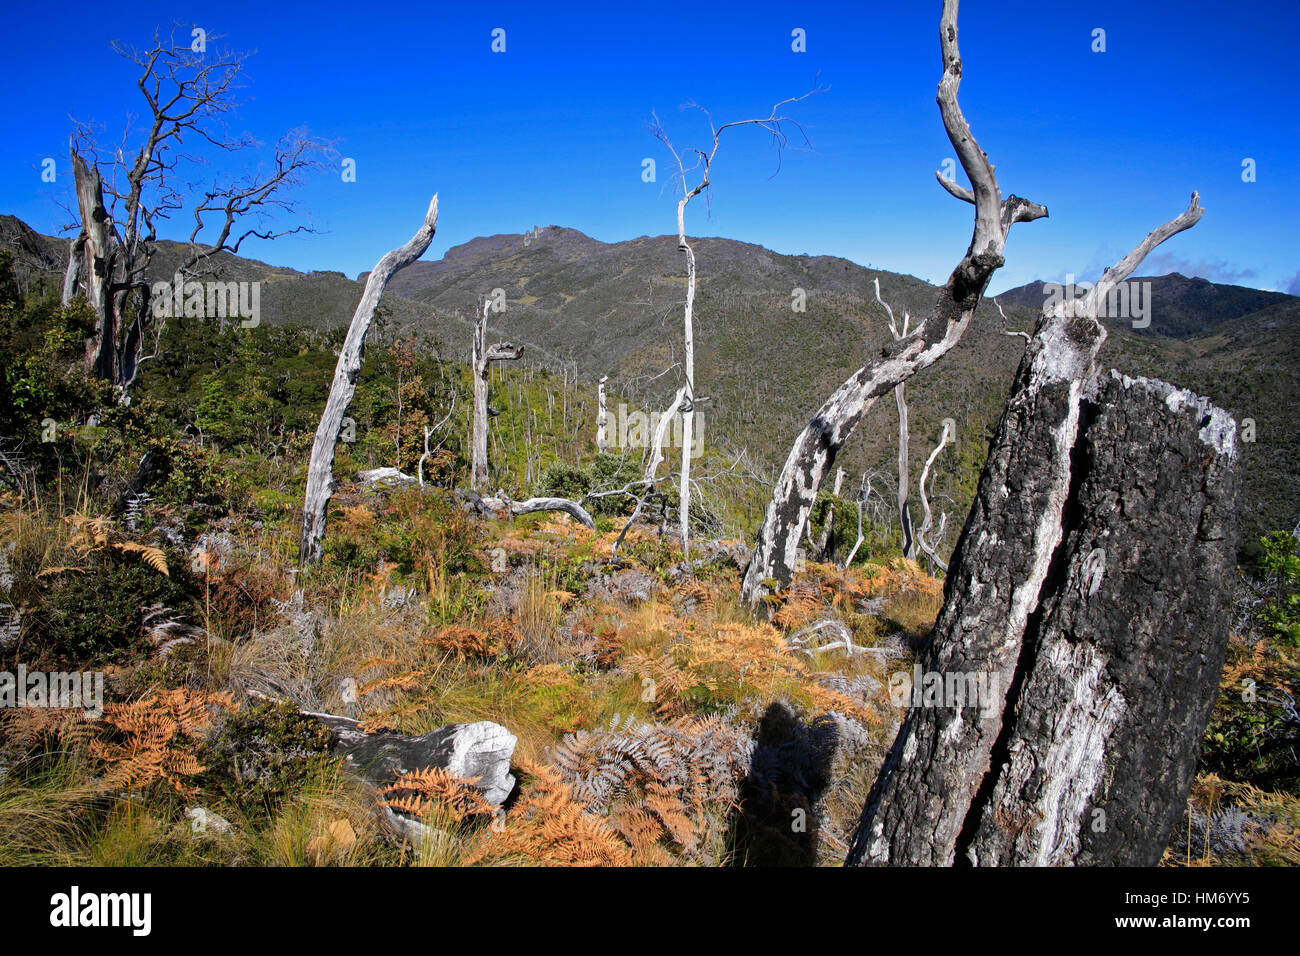 Forest Regeneration after Fire. Paramo and Crestones Rock Formation in background. Chirripo National Park, Costa - Stock Image